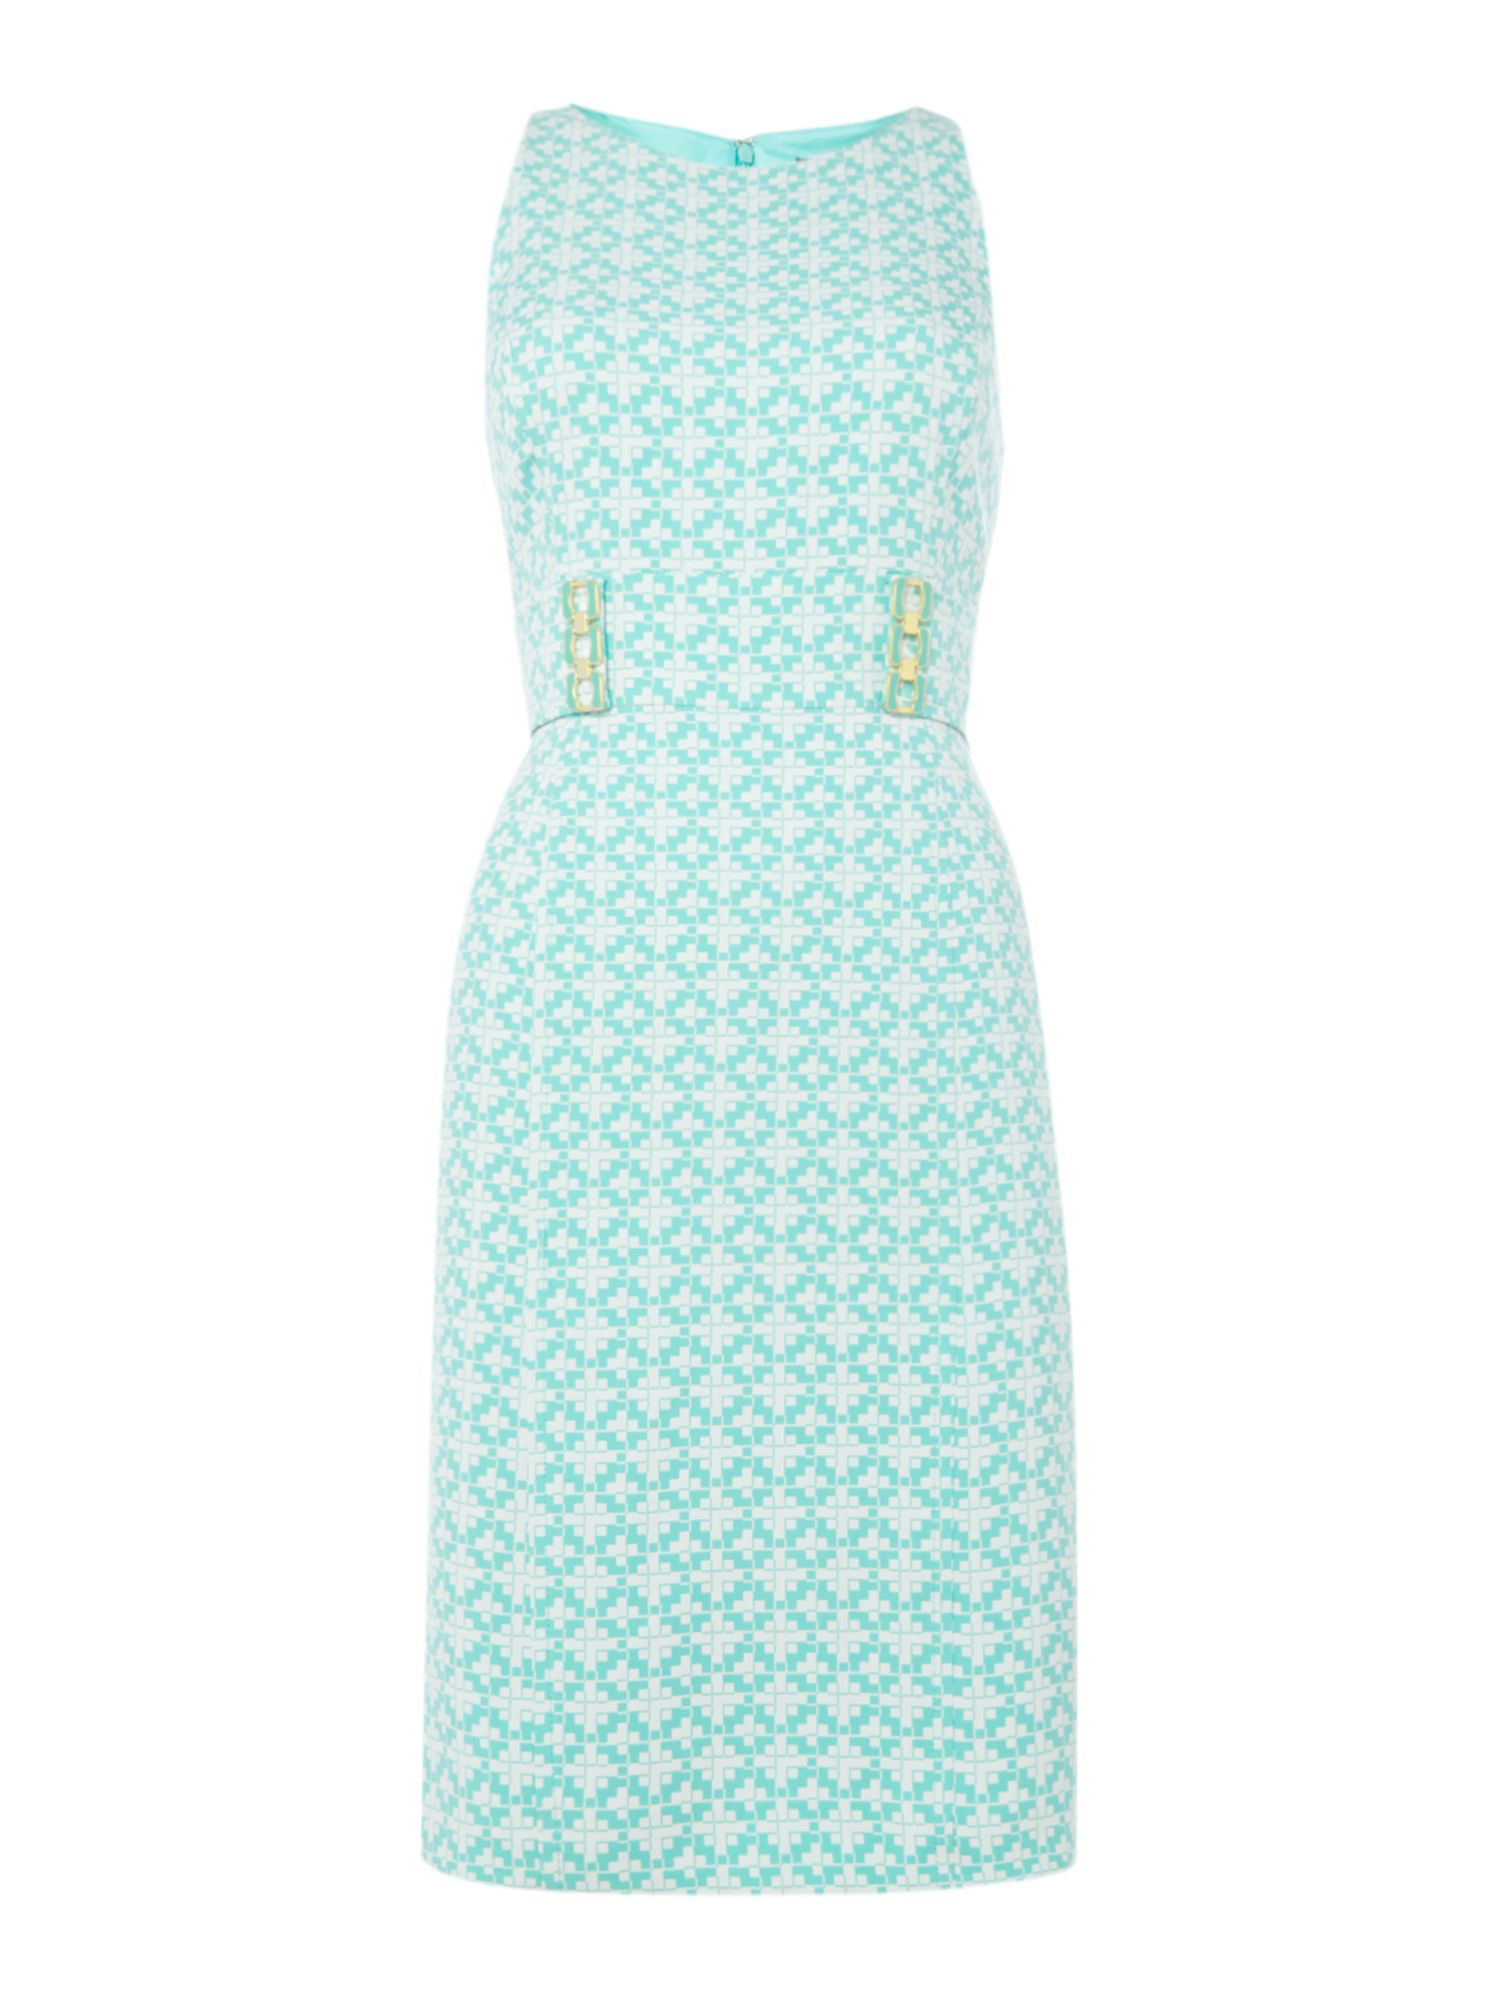 Tahari ASL Jacquard Shift Dress With Geometric Print, Blue